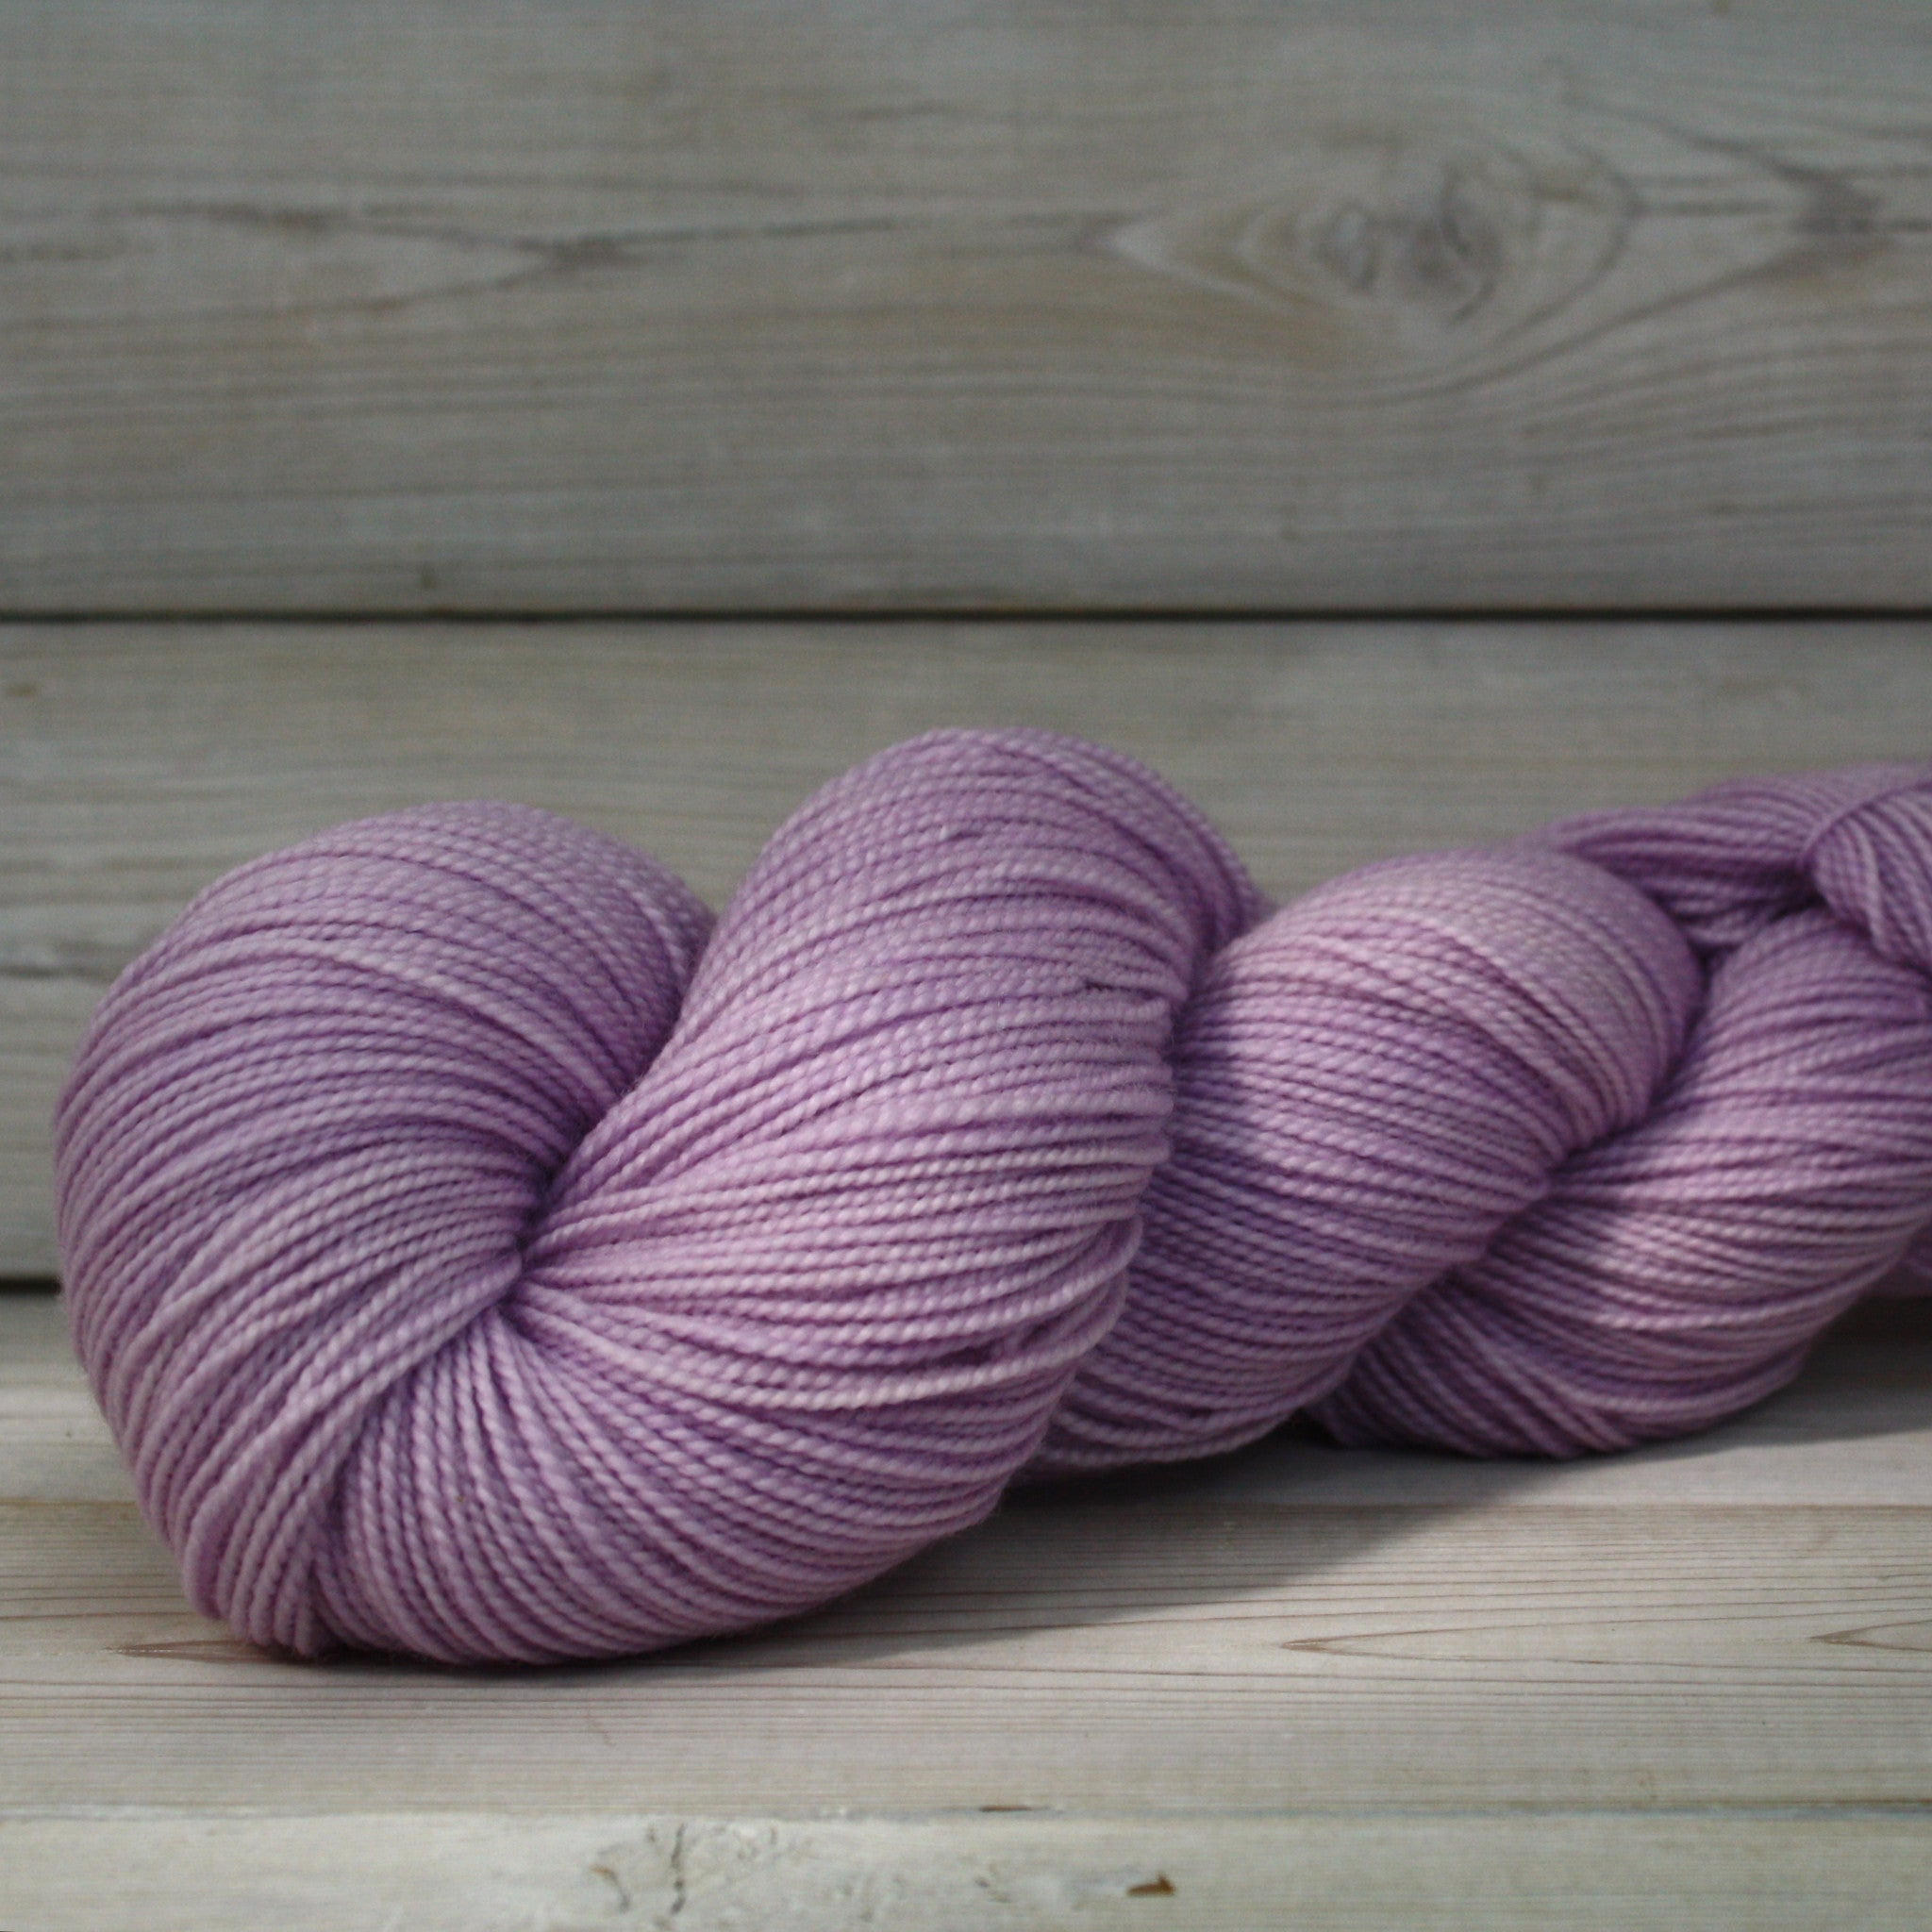 Celeste Yarn | Colorway: Wisteria